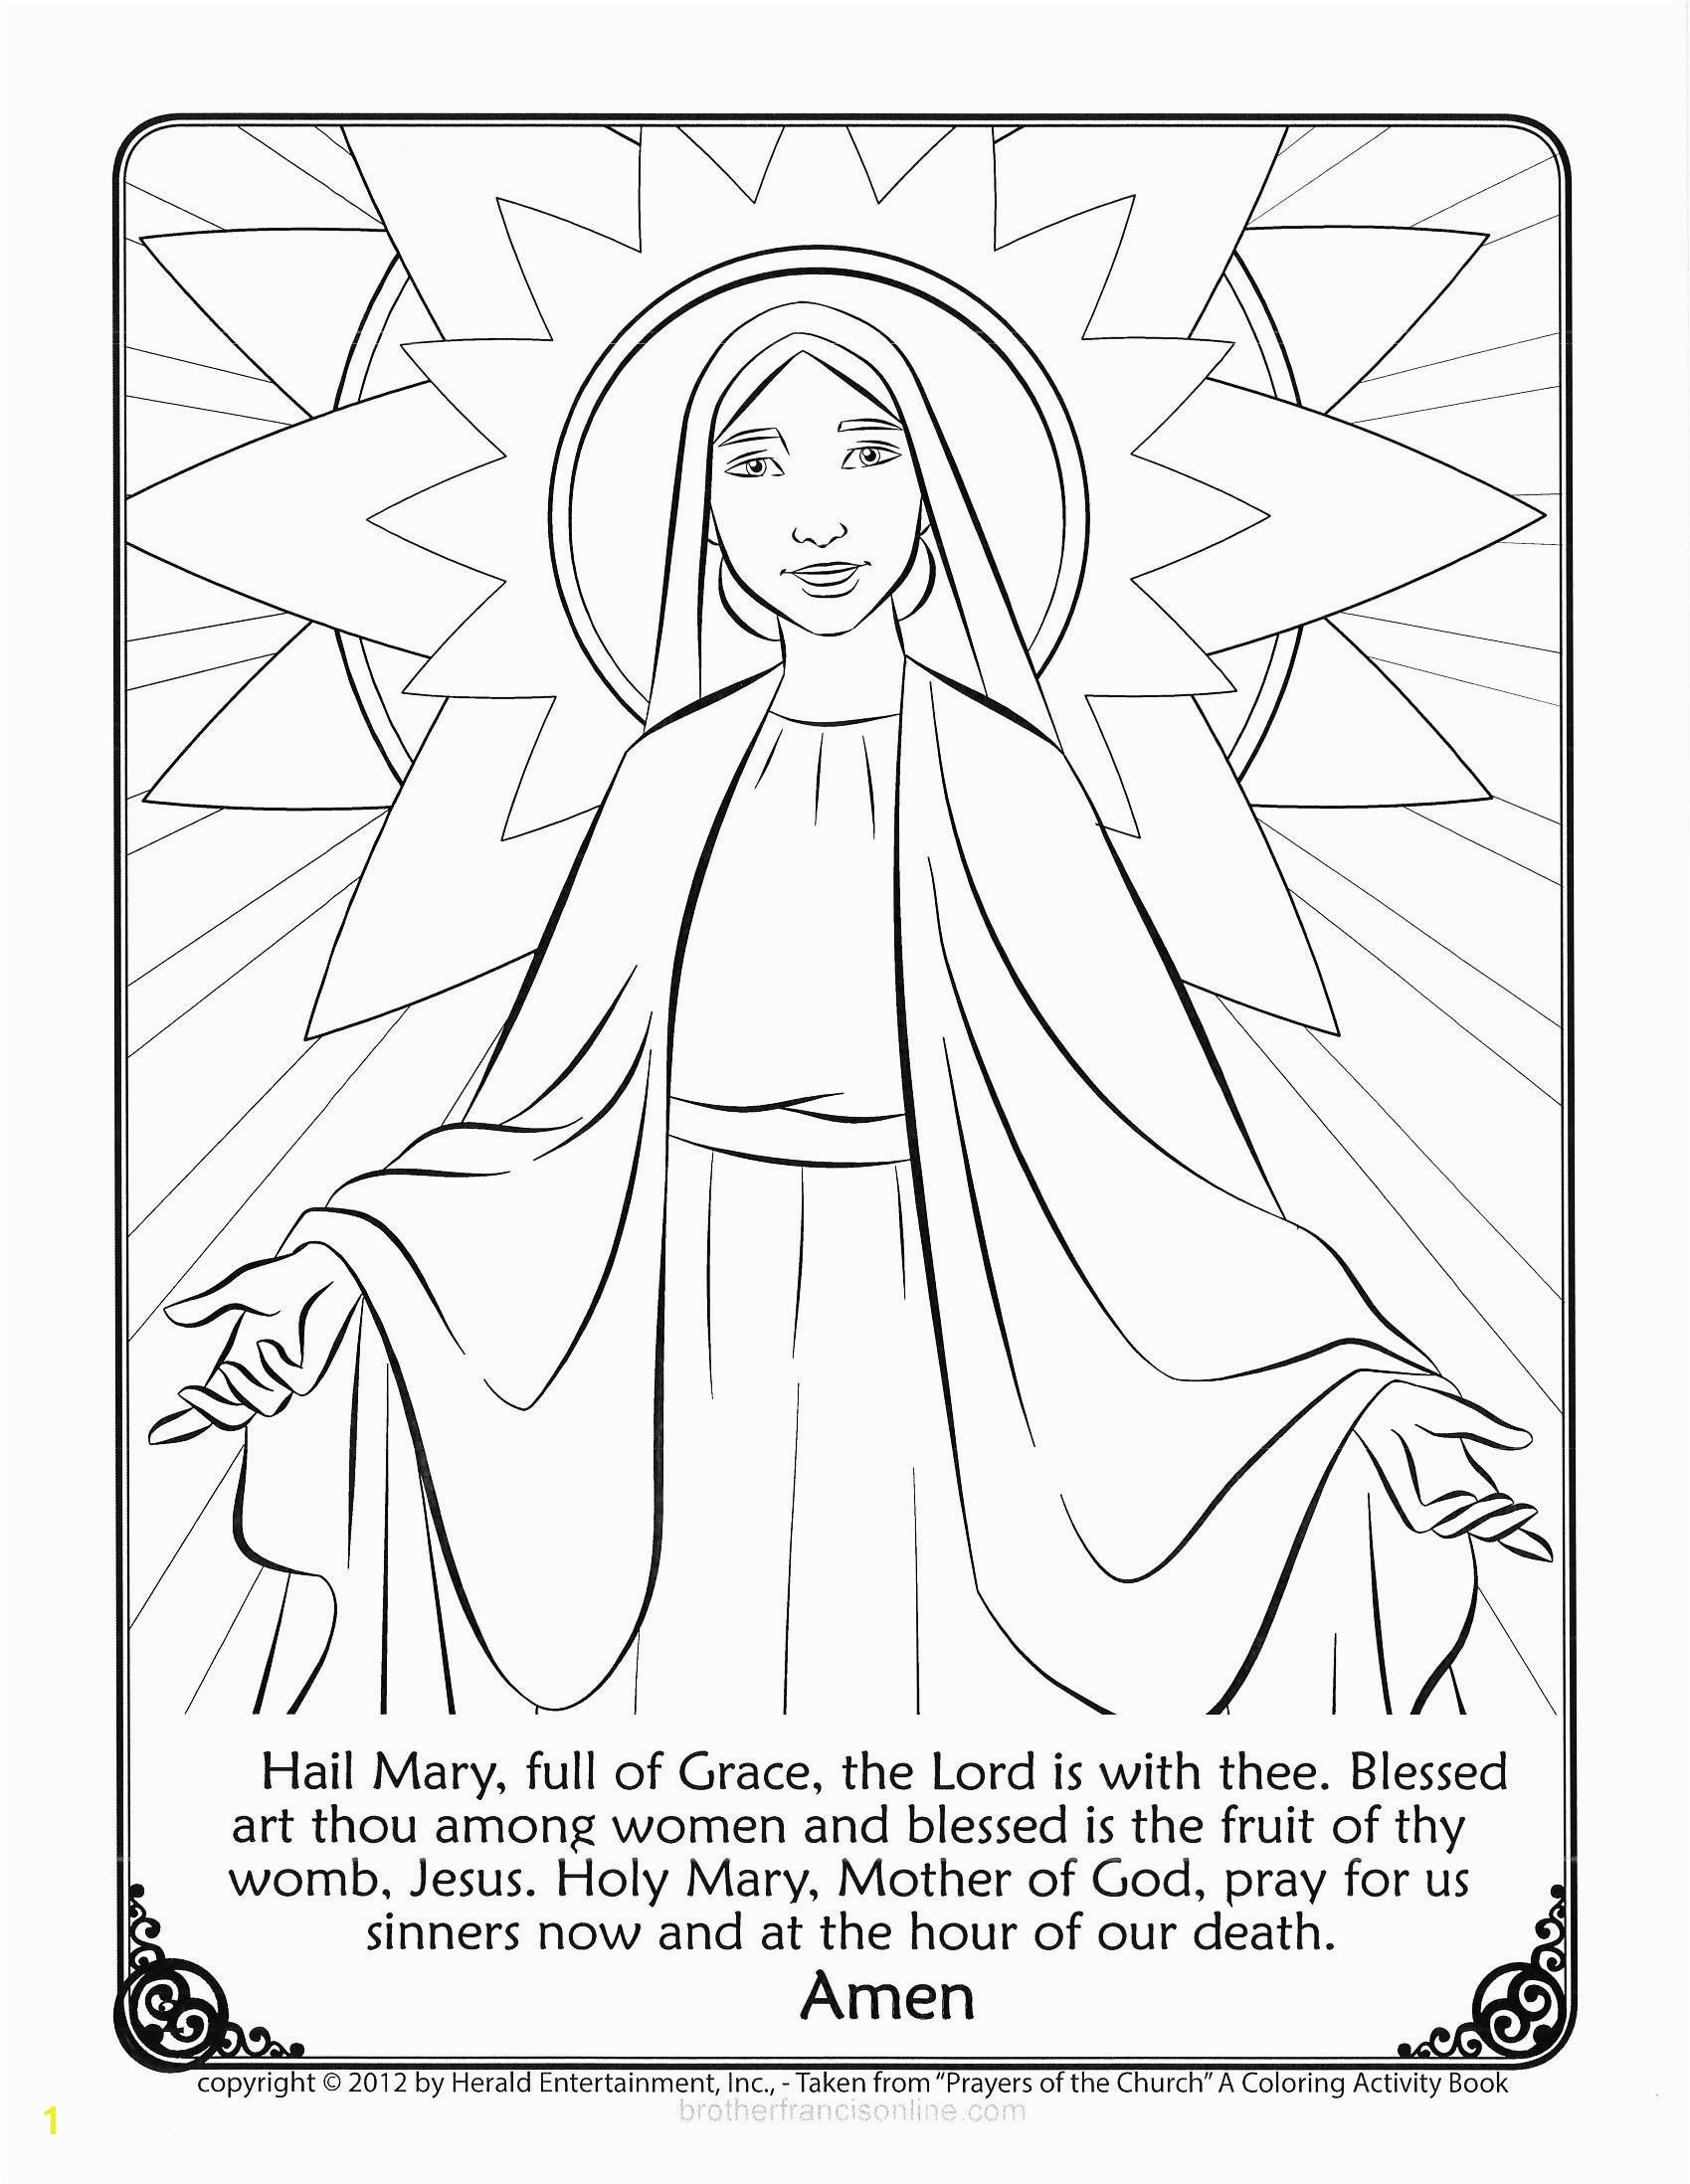 African American Woman Coloring Pages Best Printable Free Coloring Pages Elegant Crayola Pages 0d Archives